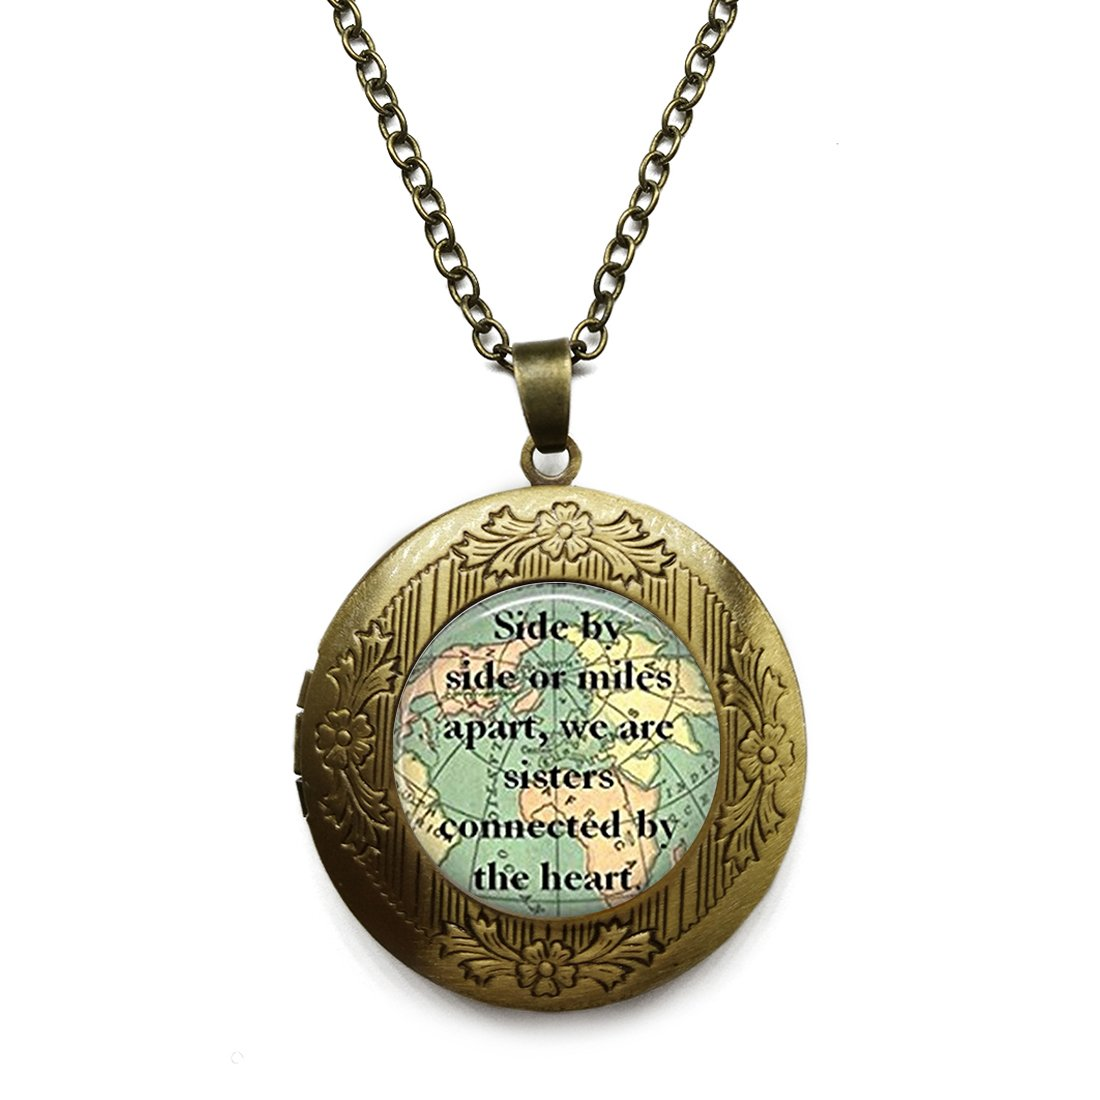 SunShine Day Bronze Necklace, Sister Map Travel World Map Design Girls/Boys Chain Necklace with Pendant